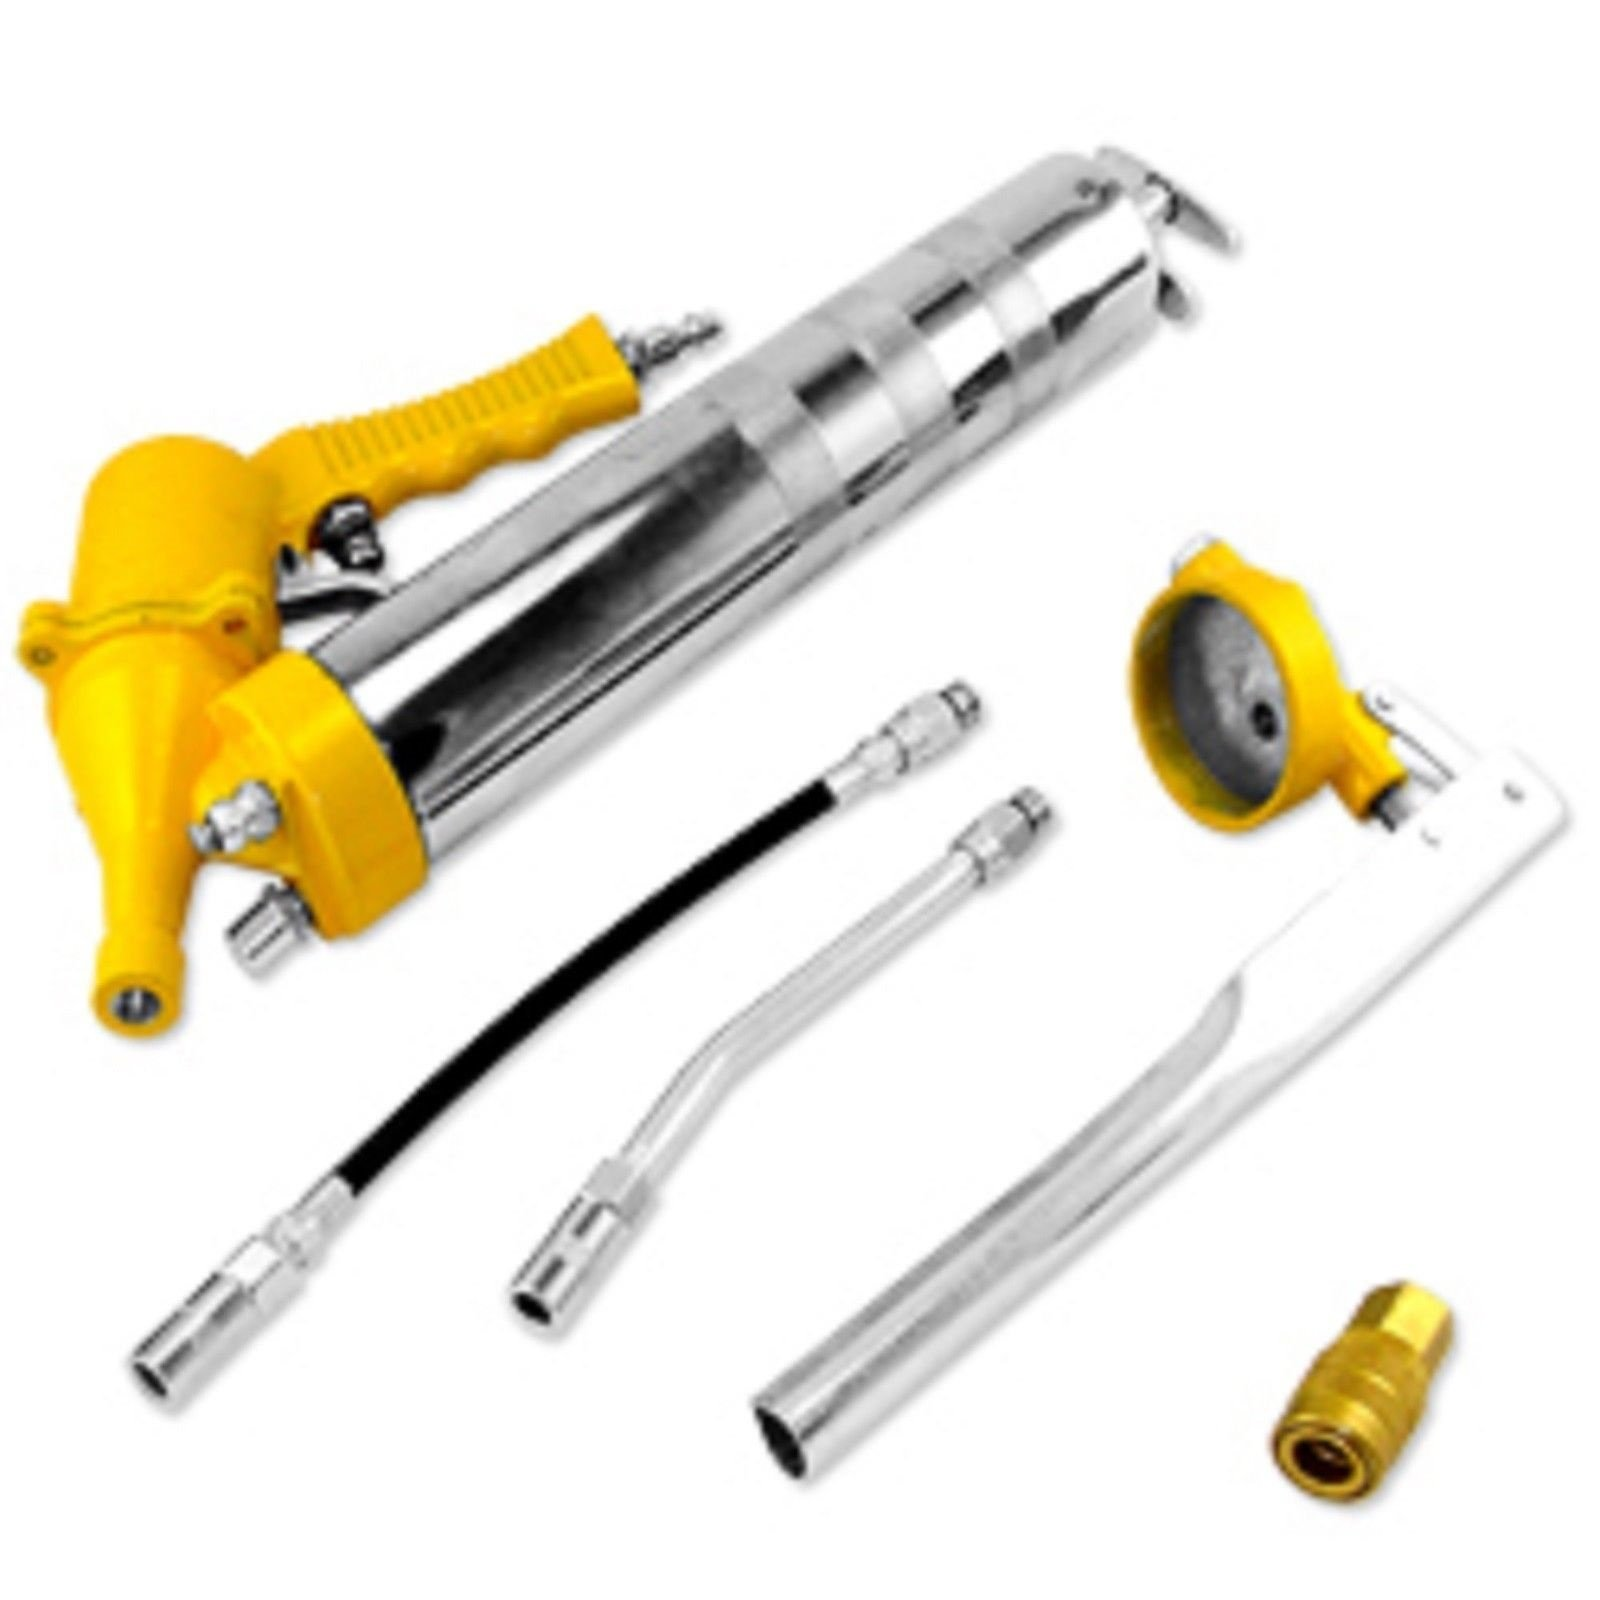 GHP 1200-6000PSI One-Hand Pistol Grip Air Pneumatic Grease Gun Set by Globe House Products